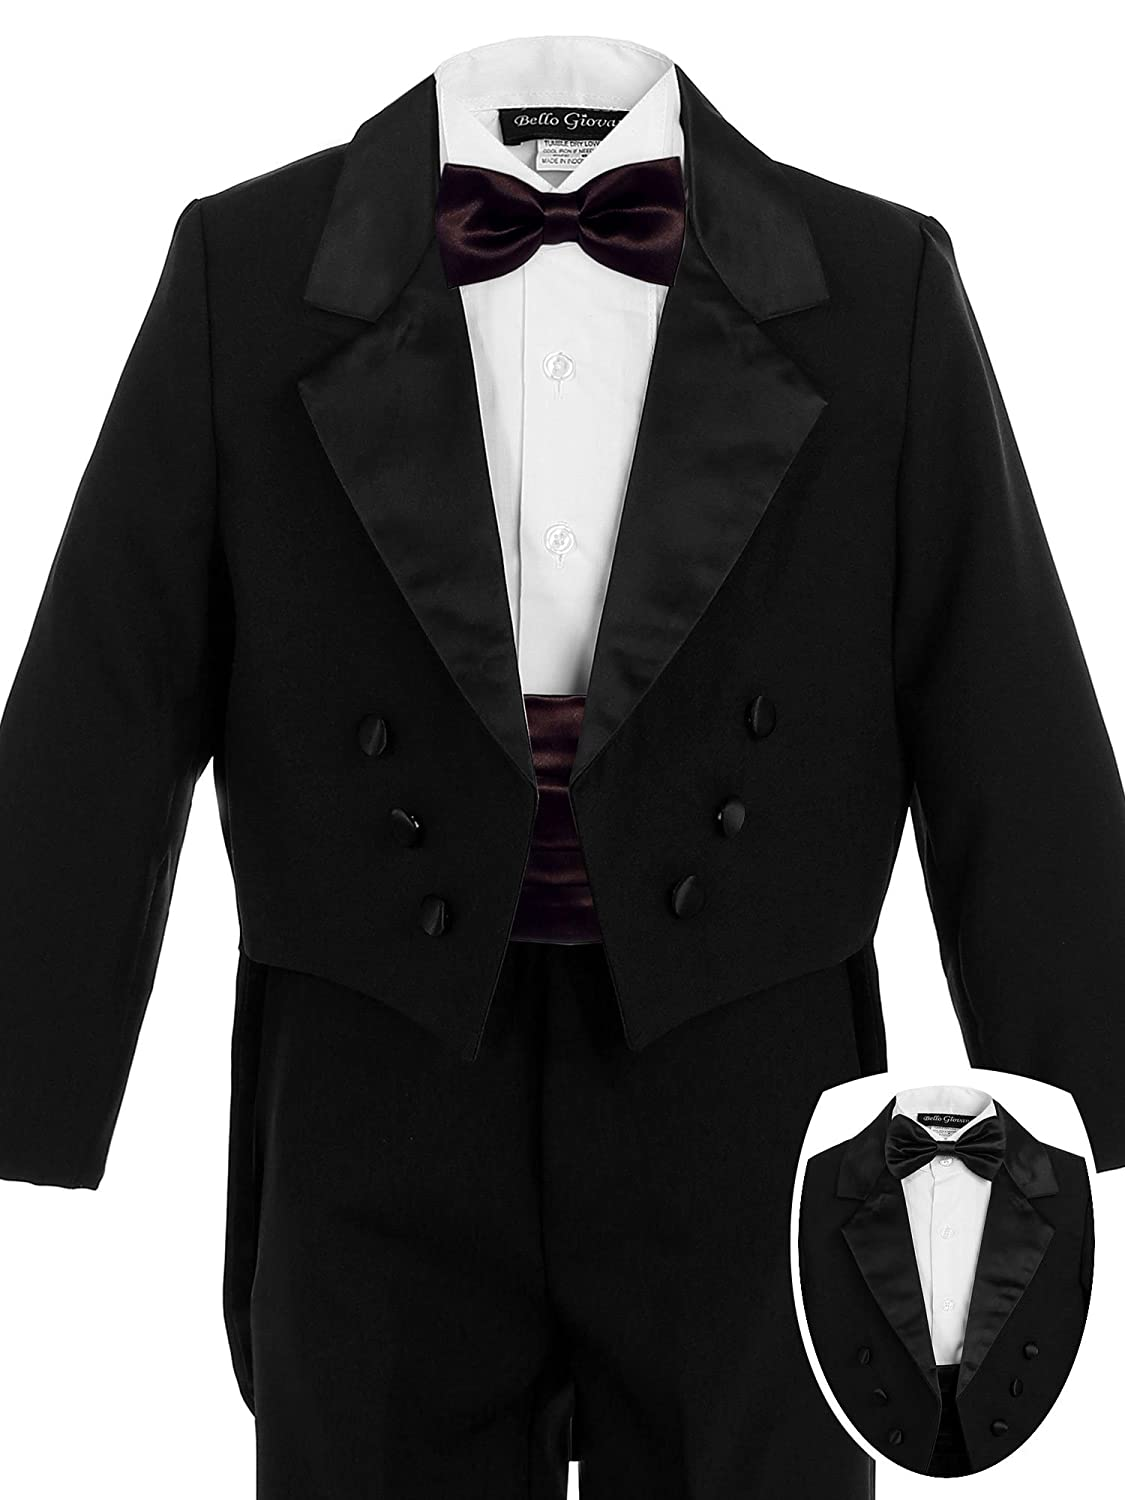 Bello Giovane Boys Black Penguin Tuxedo with Colored Cummerbund 7 Piece Set